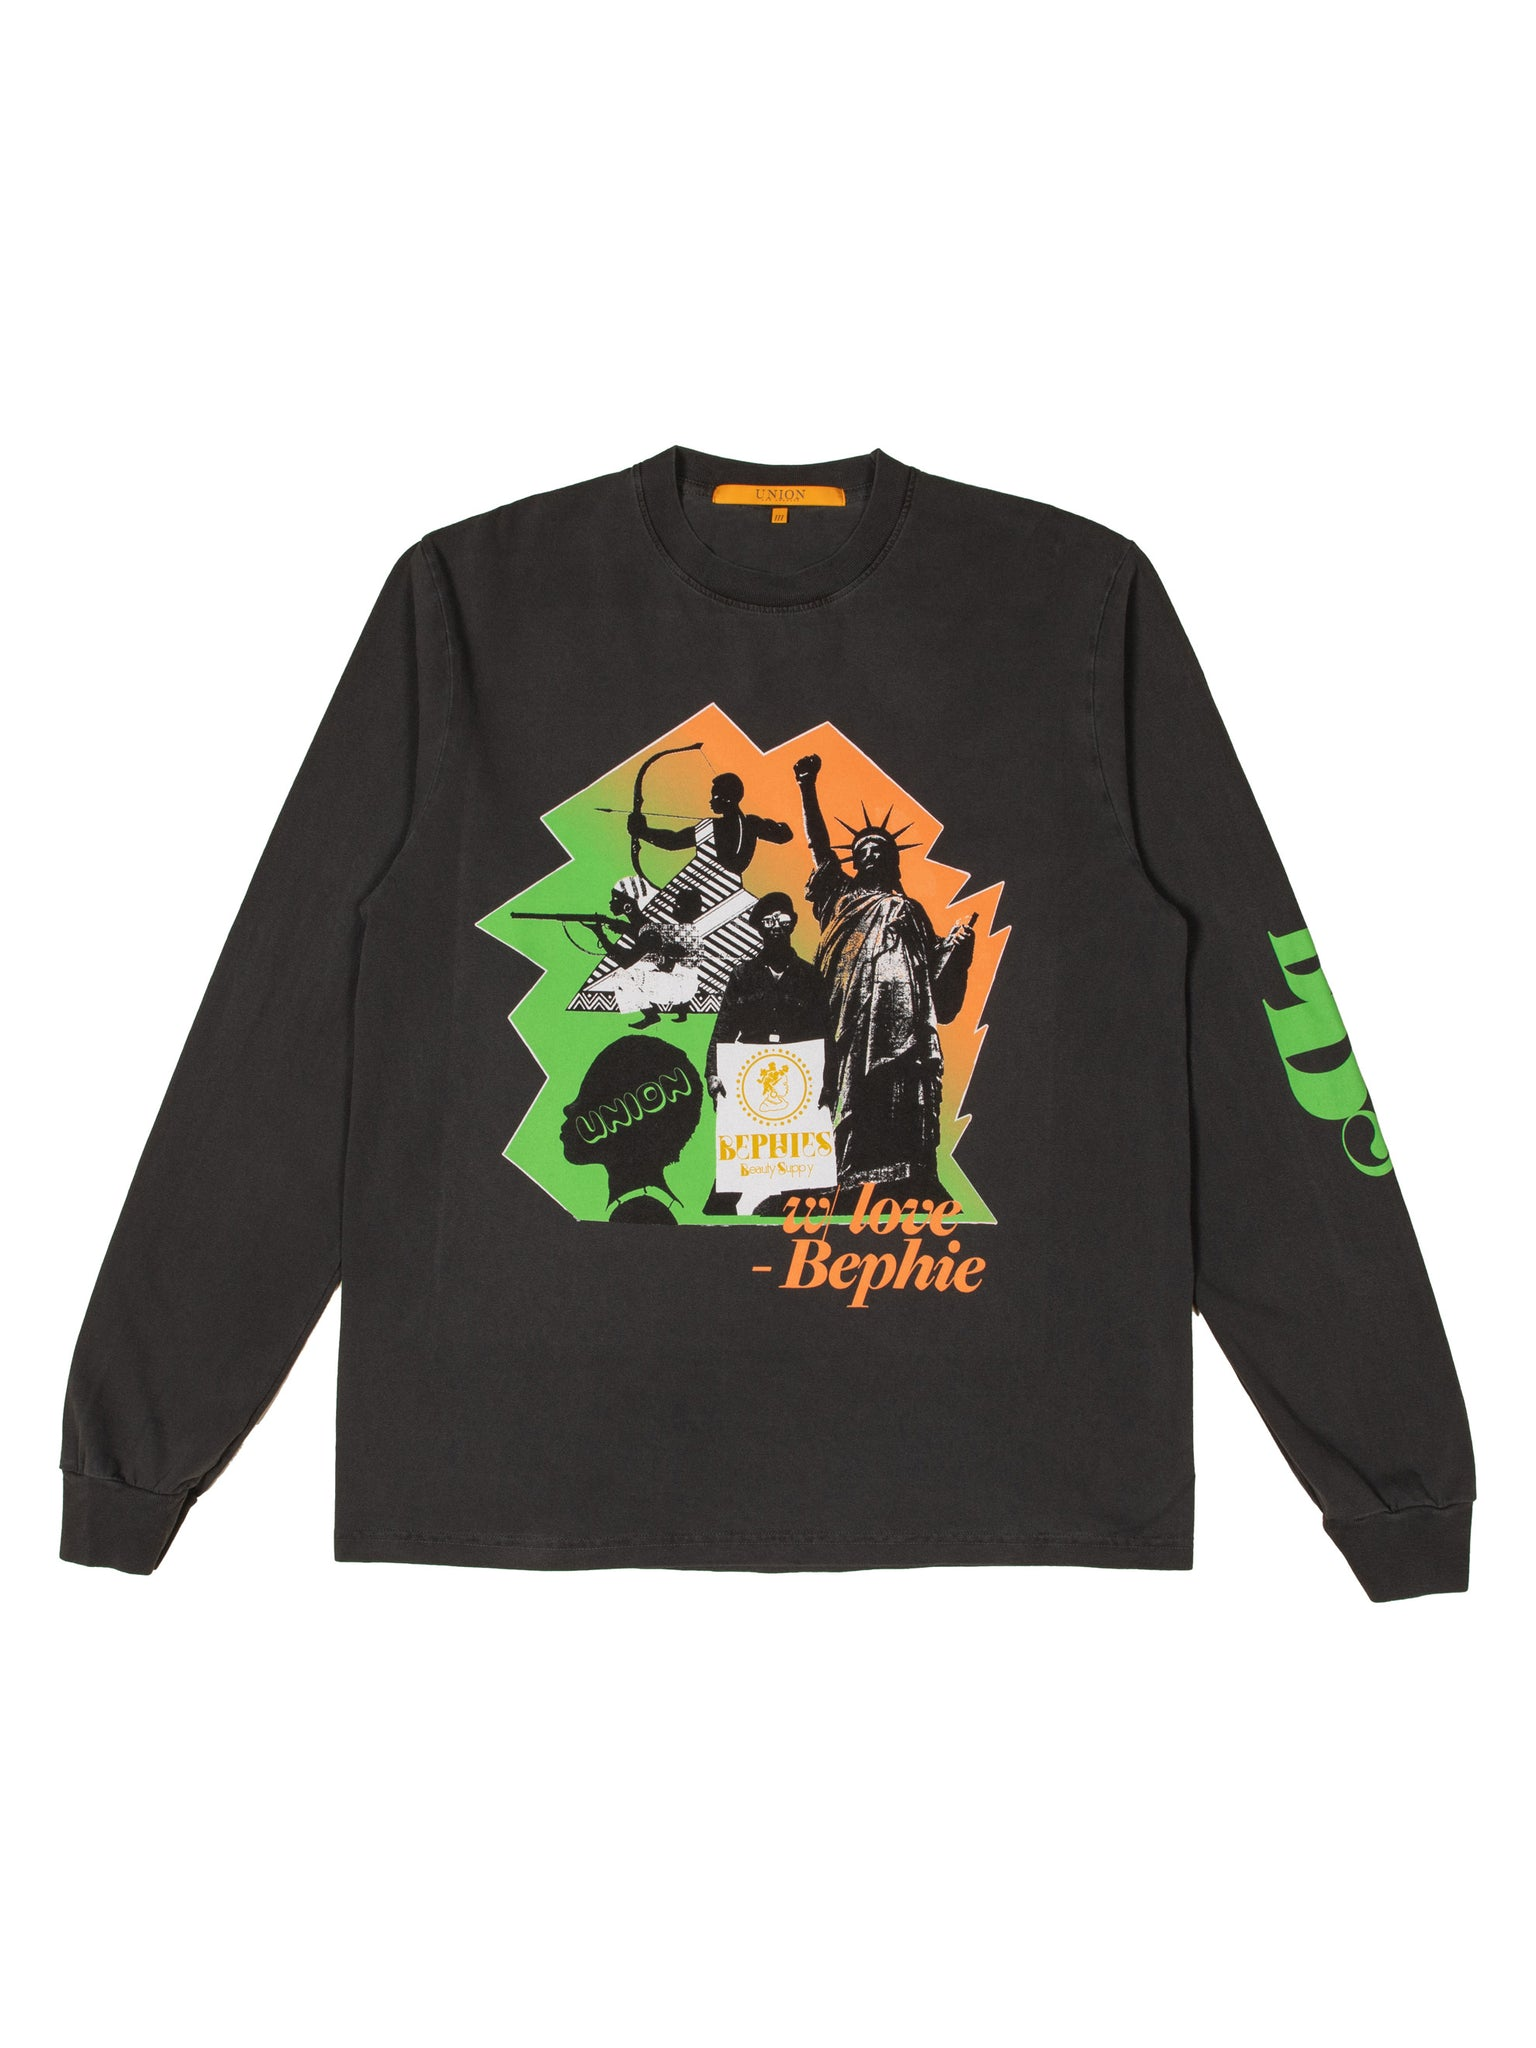 BBS x Union Long Sleeve Tee